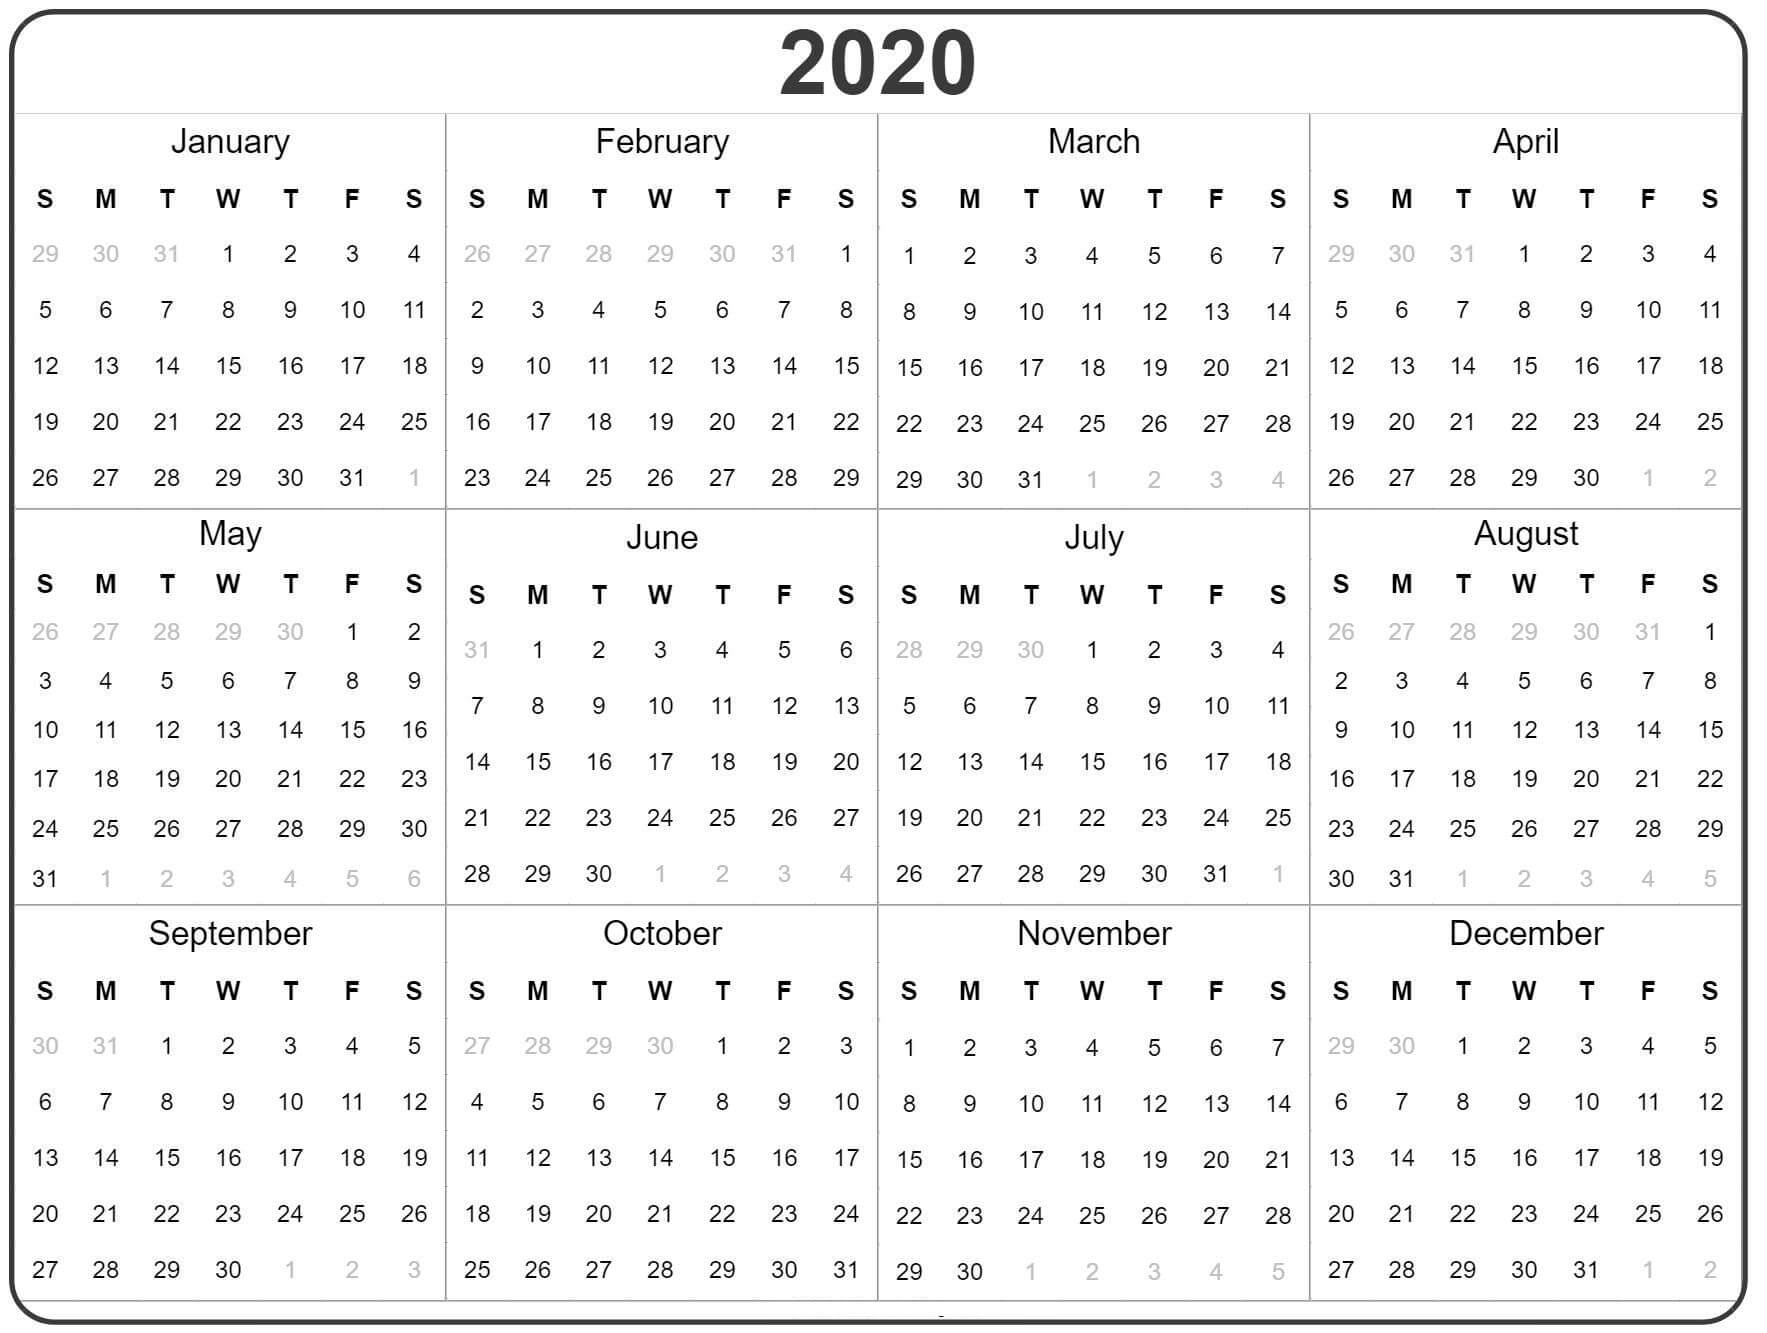 Free Yearly Calendar 2020 With Notes - 2019 Calendars For in 2020 Year At A Glance Calendar